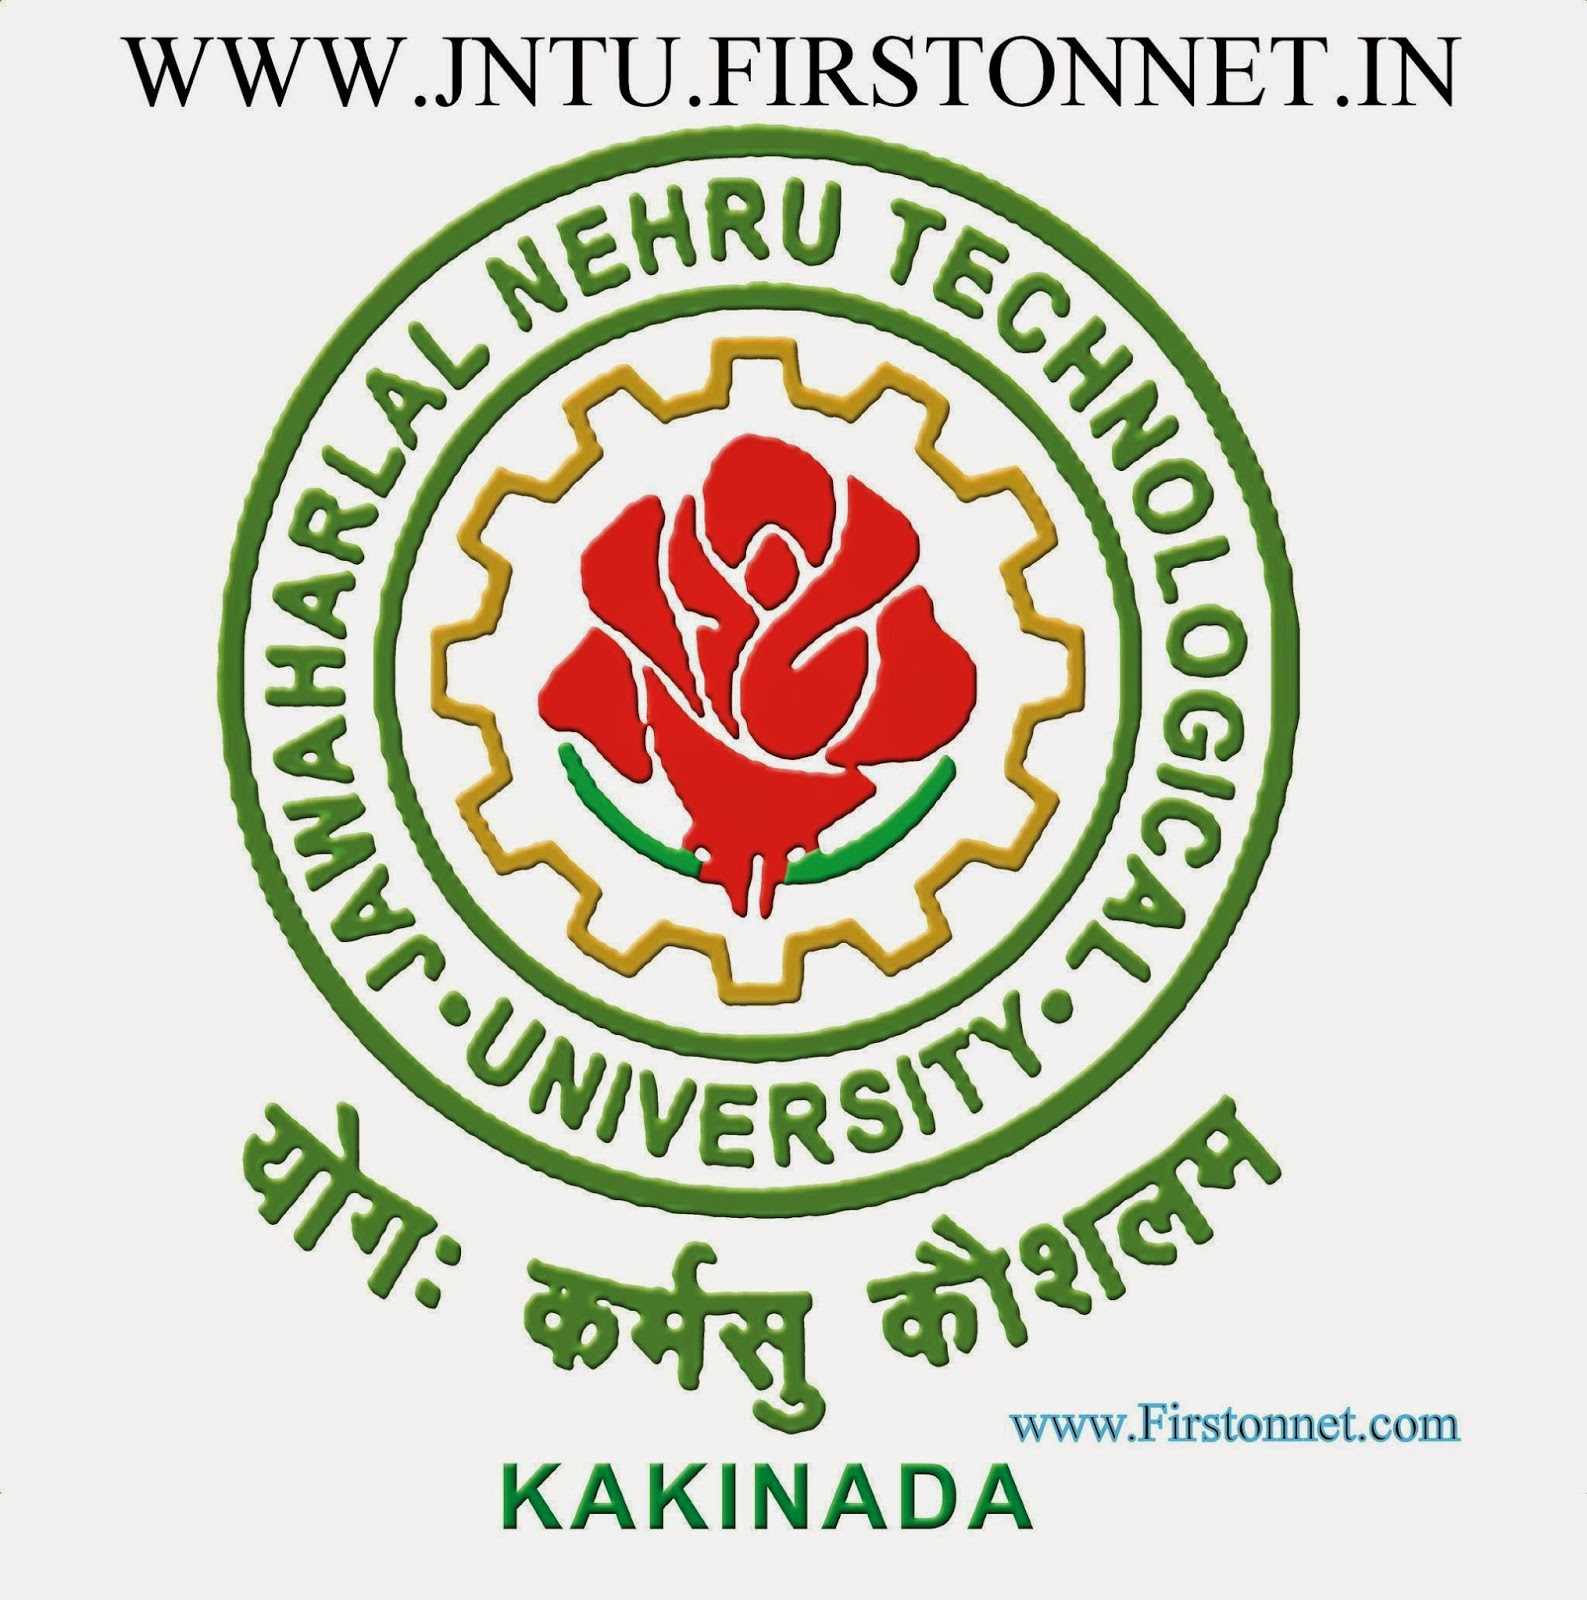 JNTU-K R10 B.Tech 2-1 Regular Results 2014 manabadi schools9